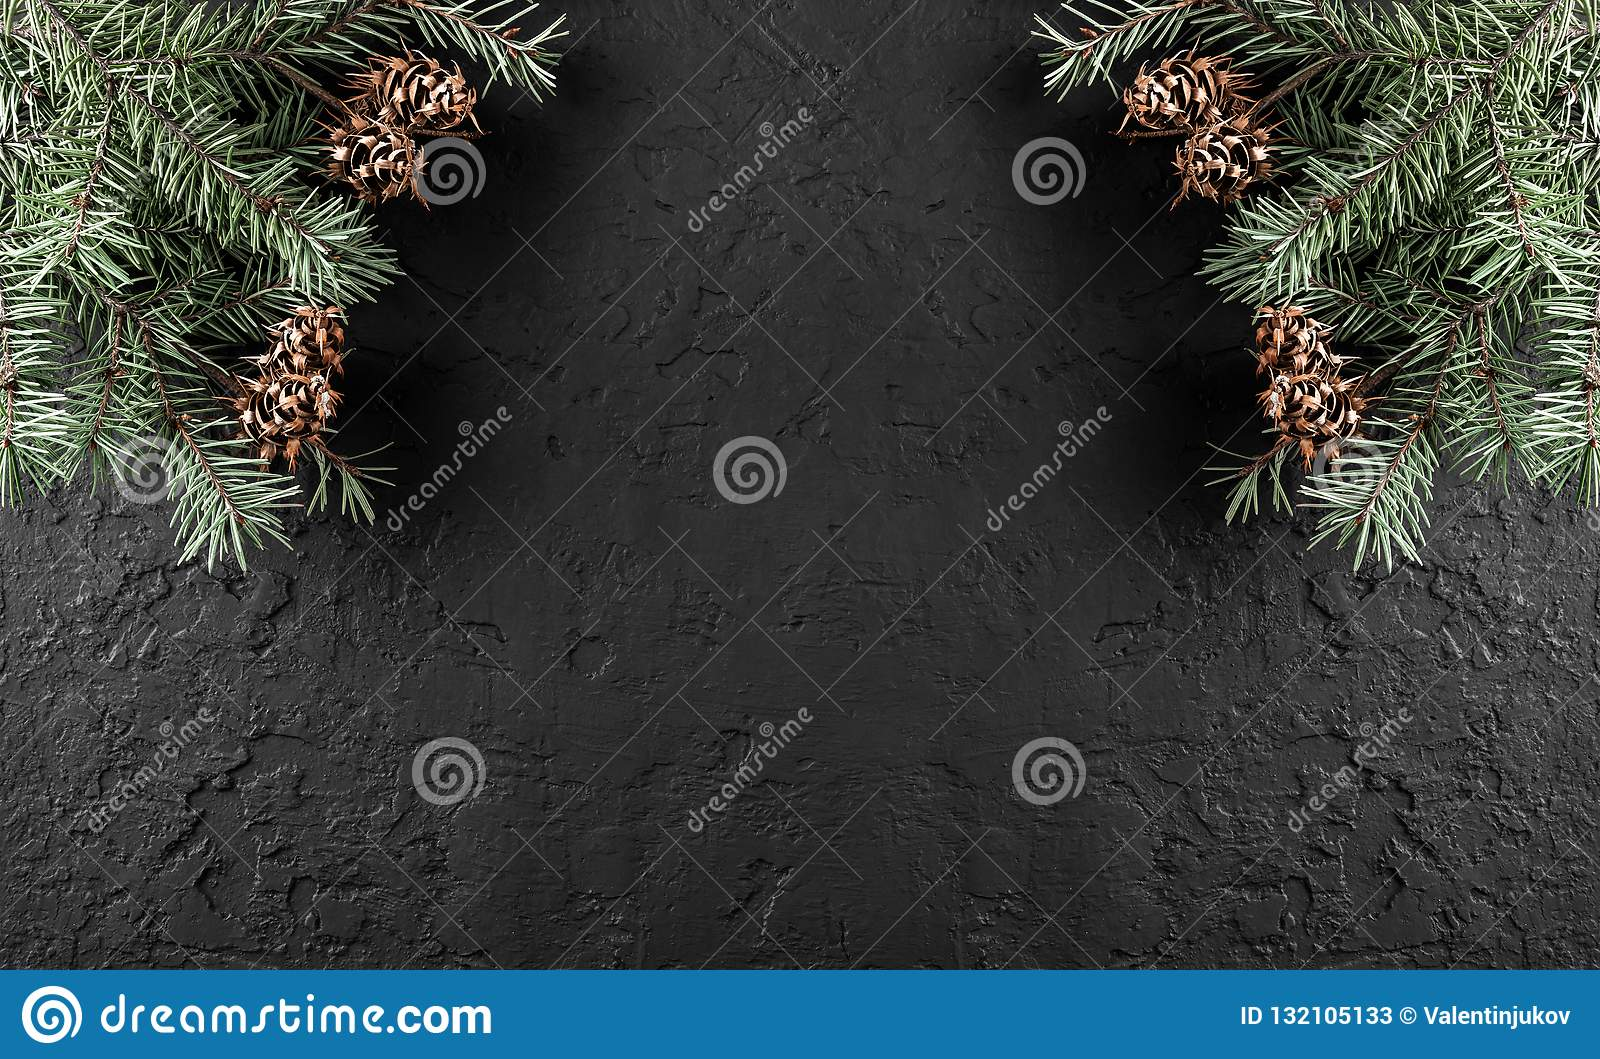 Christmas Fir branches with pine cones on dark holiday background with light. Xmas and Happy New Year theme.